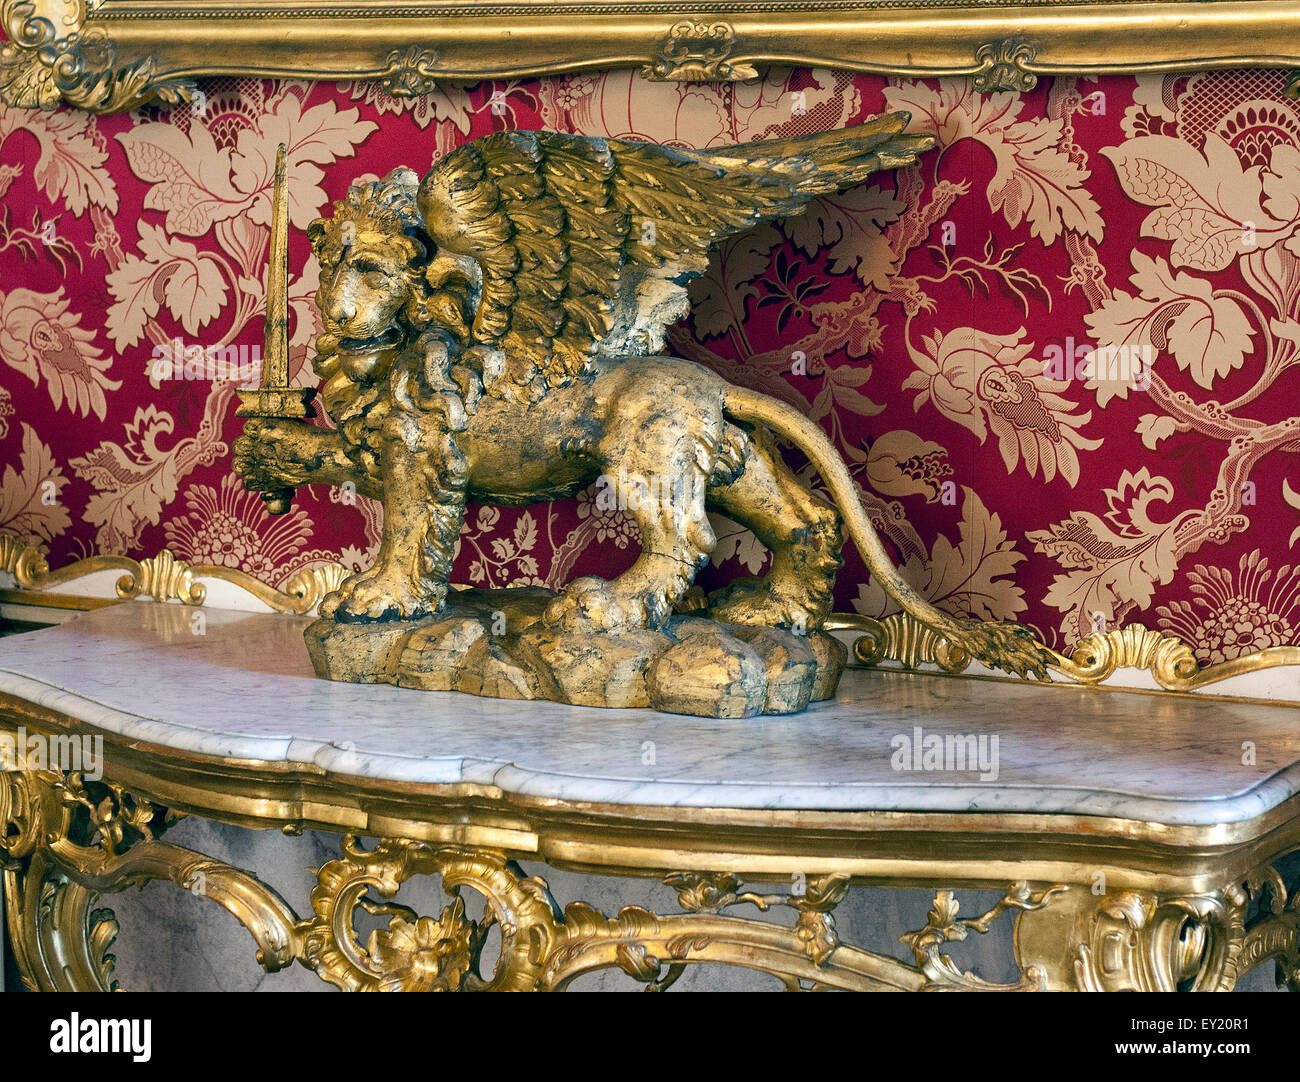 The Winged lion of St Mark, since 9th century a symbol of the Venetian Republic, Quattro Porte Museo Correr,  Venice - Stock Image